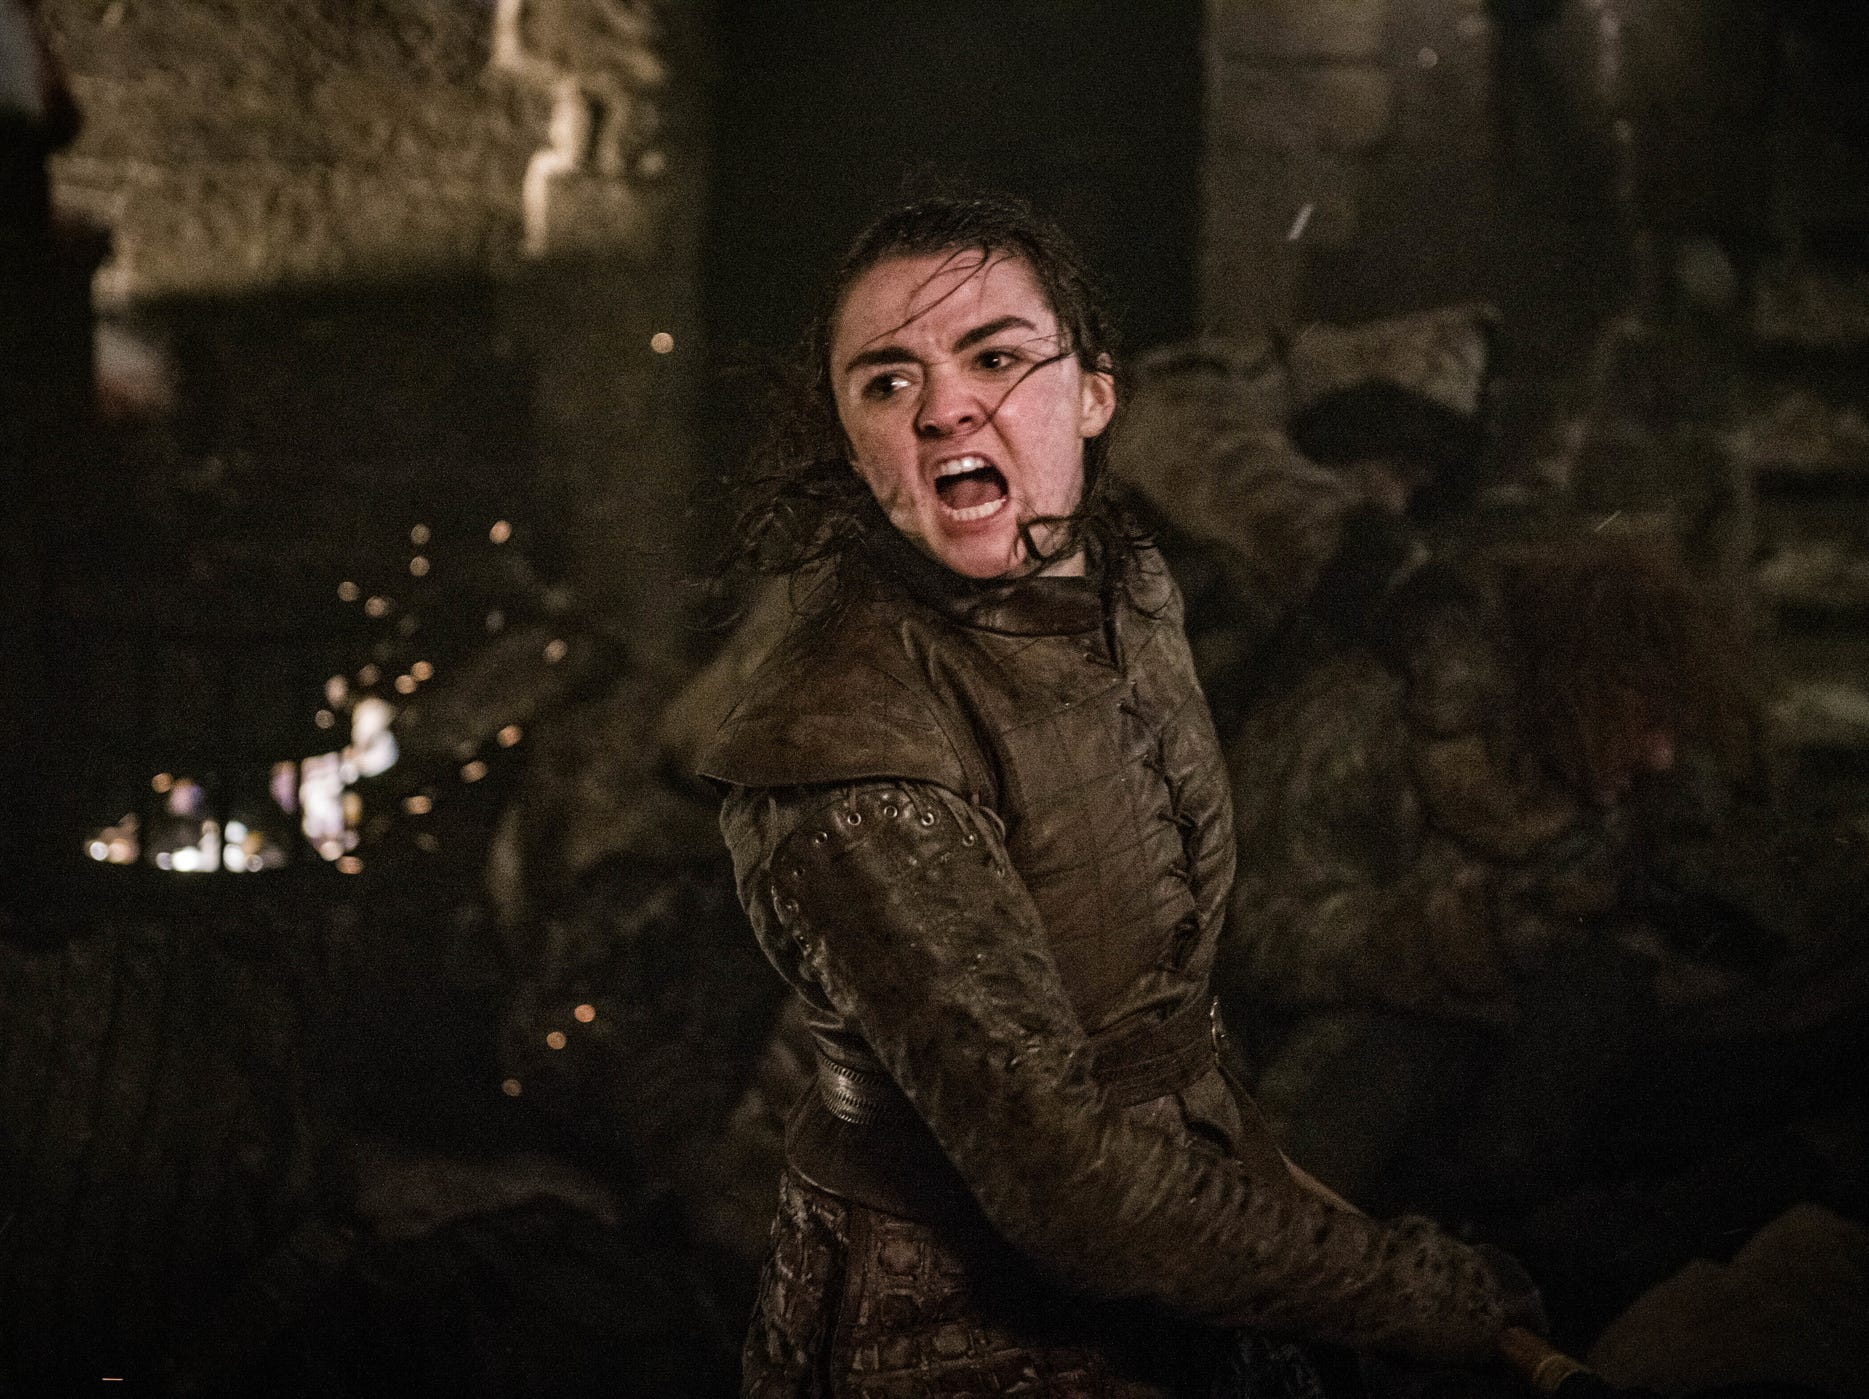 Arya Stark's (Maisie Williams) fighting skills and heroism were on full display in Sunday's episode, 'The Long Night.'